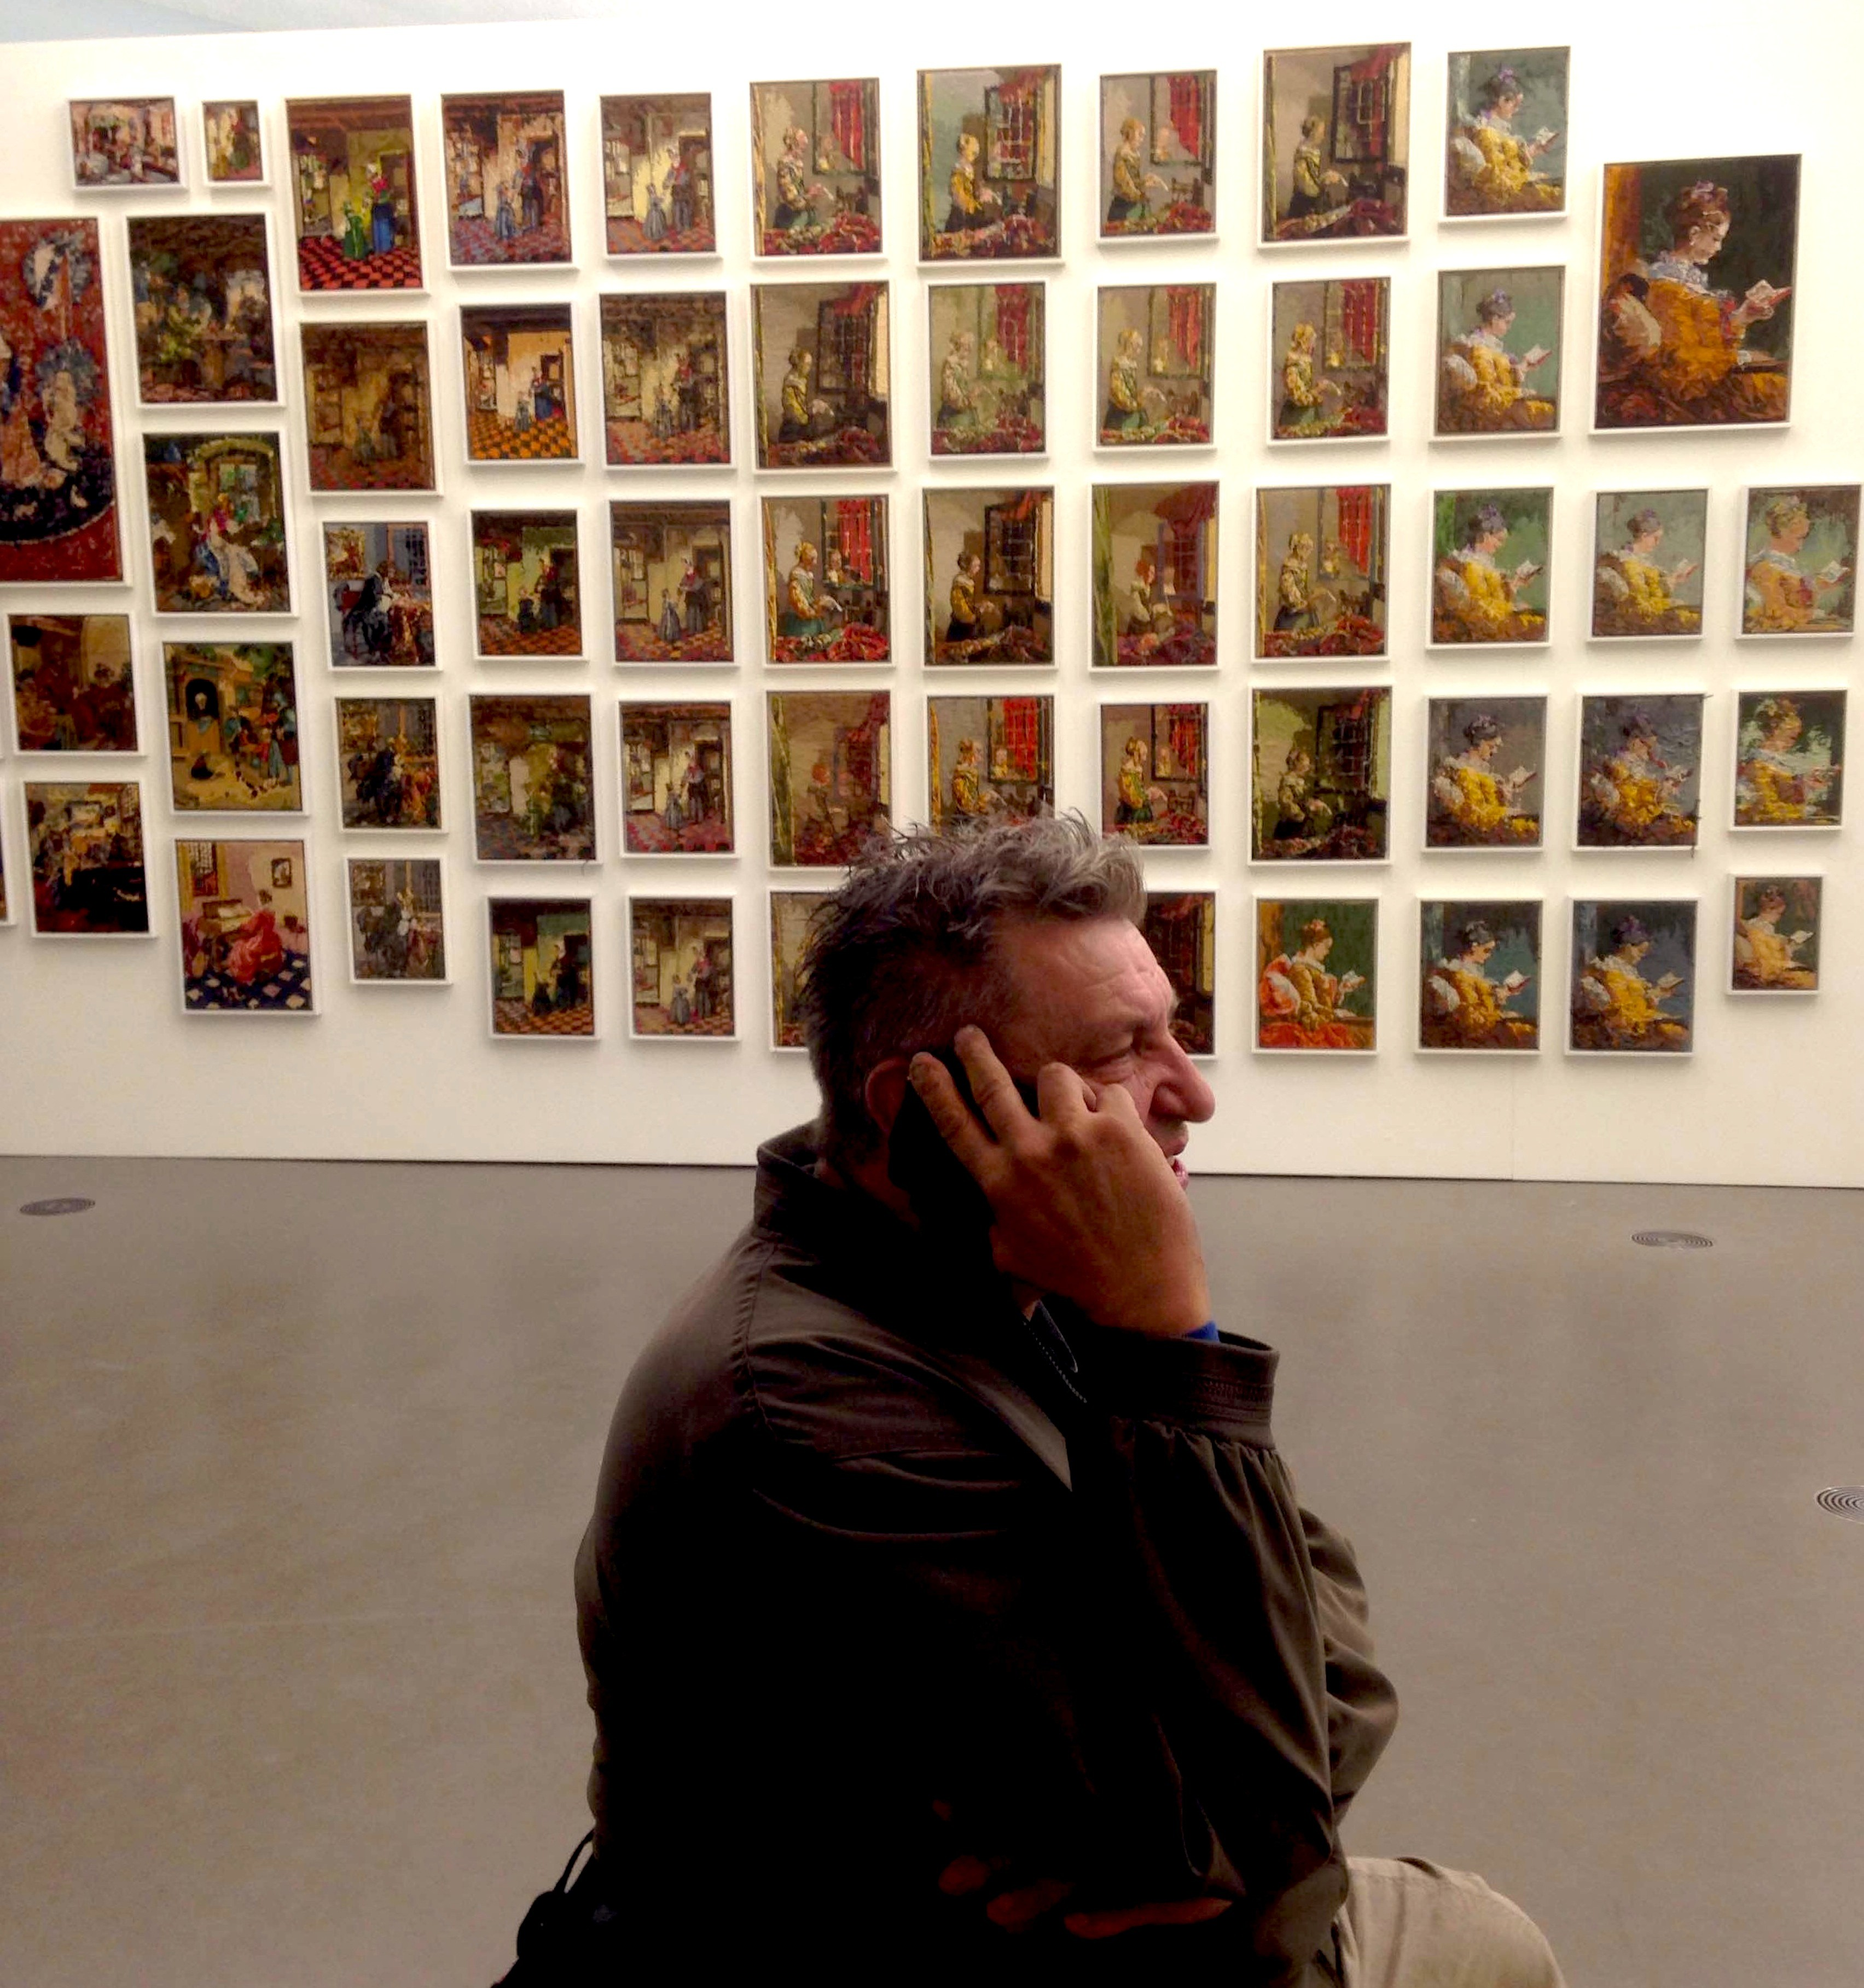 Rob Scholte on the telephone in The Embroidery Show (foto Lijsje Snijder)